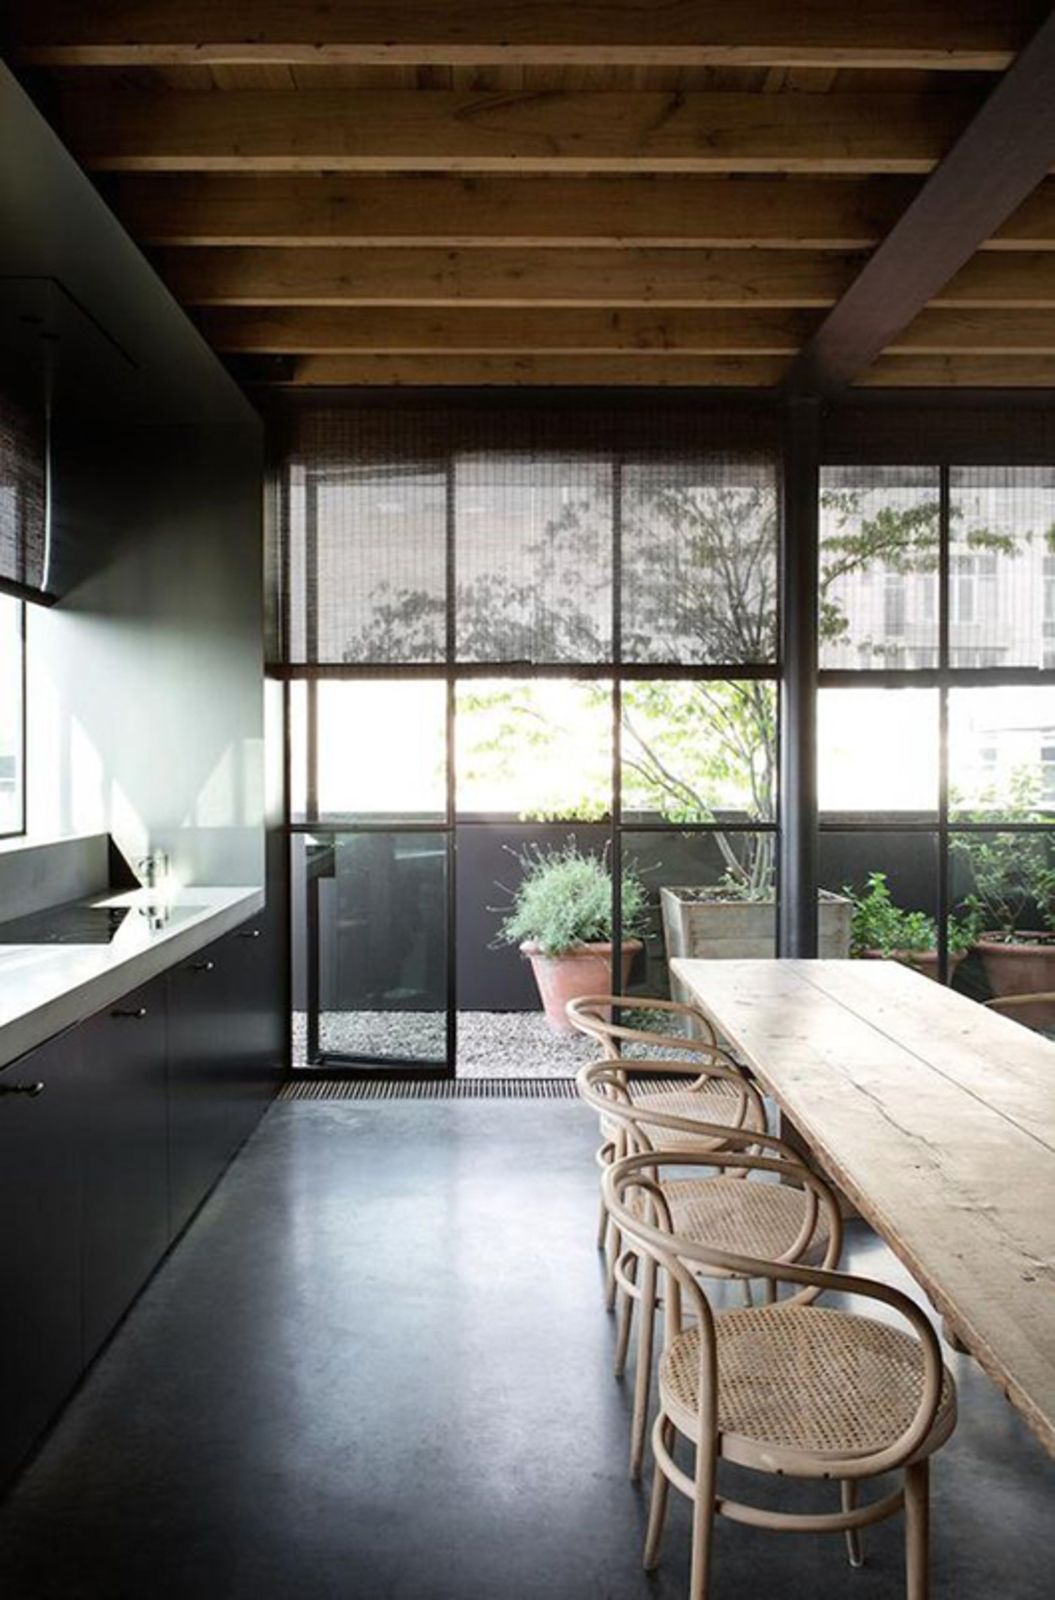 Kitchen by lara deam from window watching interiors kitchens and